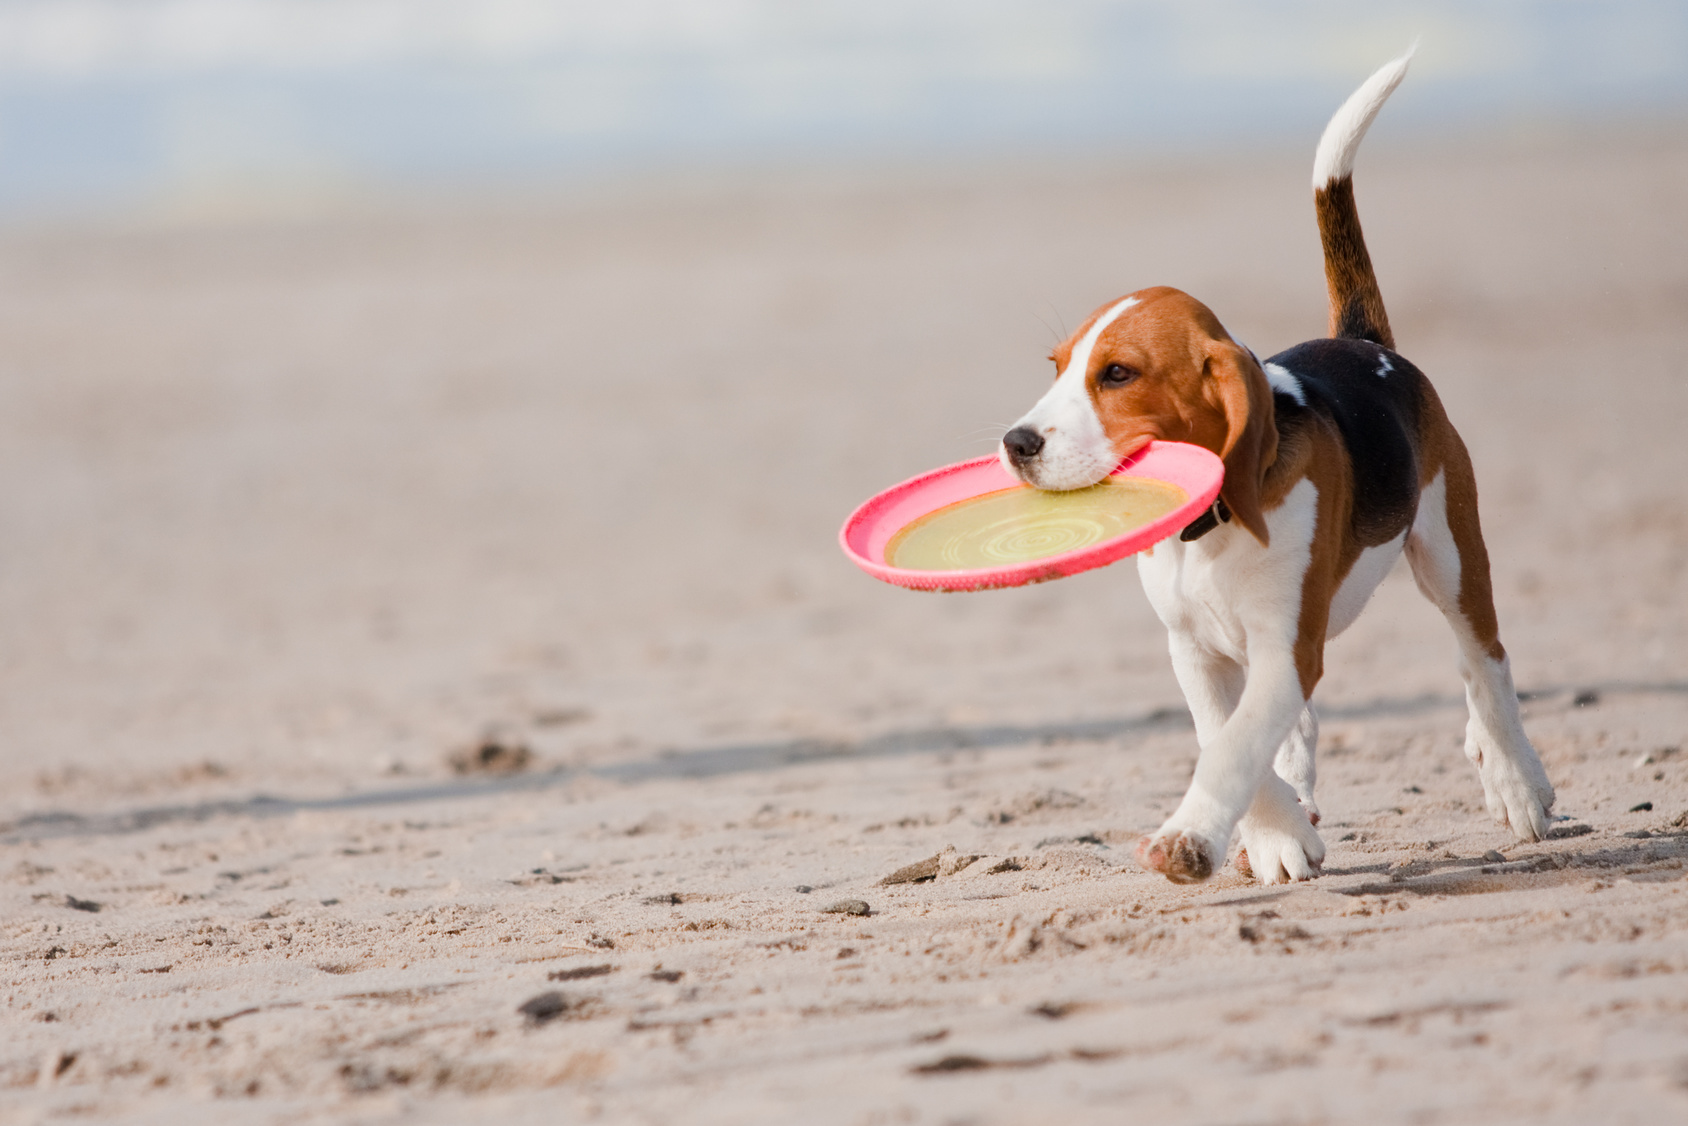 Small dog, beagle puppy playing with frisby on beach